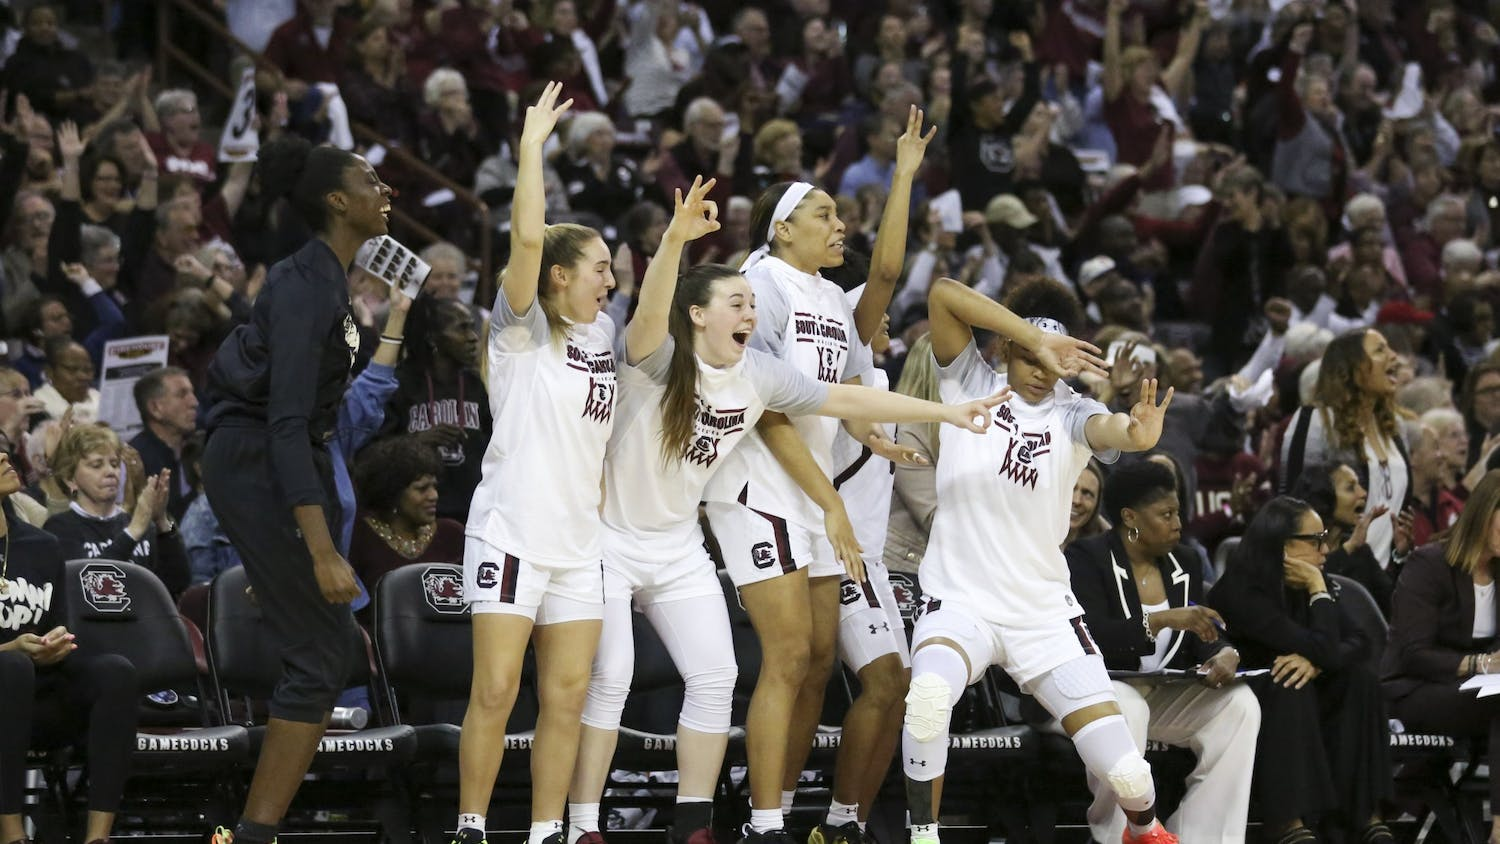 South Carolina's bench celebrates after one of its players scored a 3-point shot during the second half. The Gamecocks had multiple 3-point shots to start the second half.